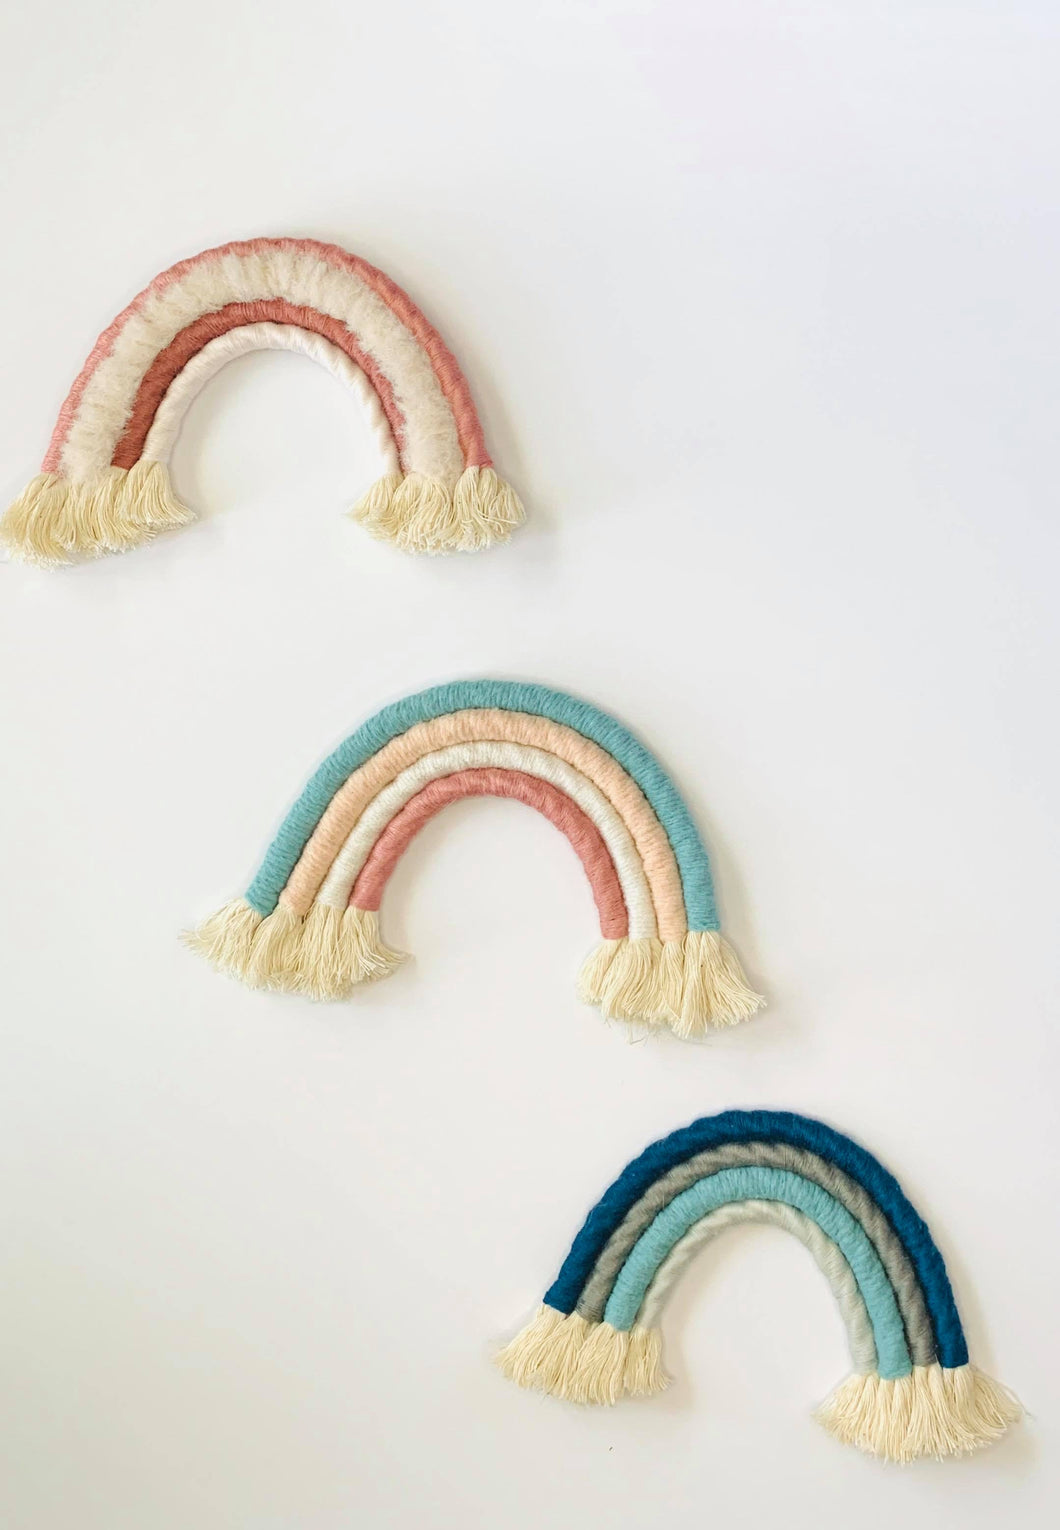 Macrame Rainbow Home Decor - Kierra B Art